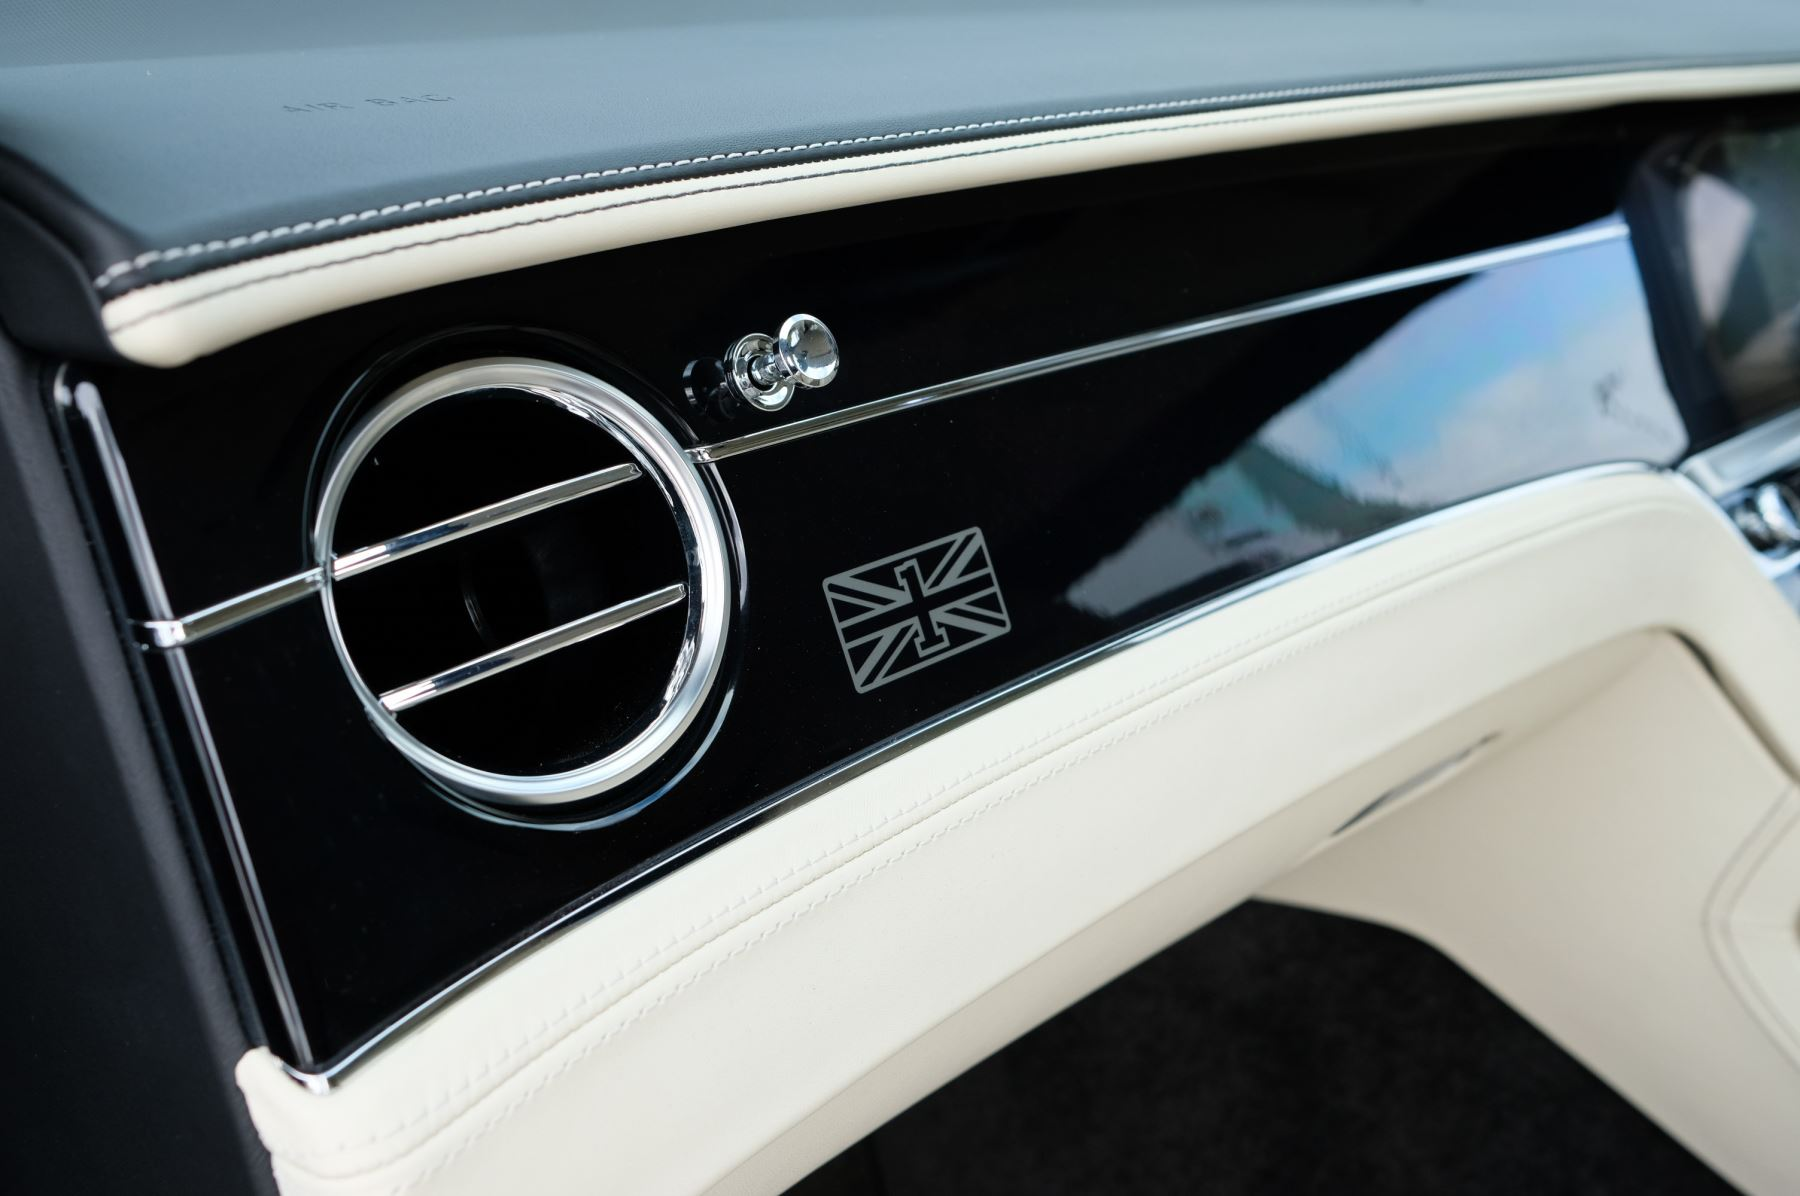 Bentley Continental GT 6.0 W12 1st Edition - Comfort Seating - Touring Specification image 22